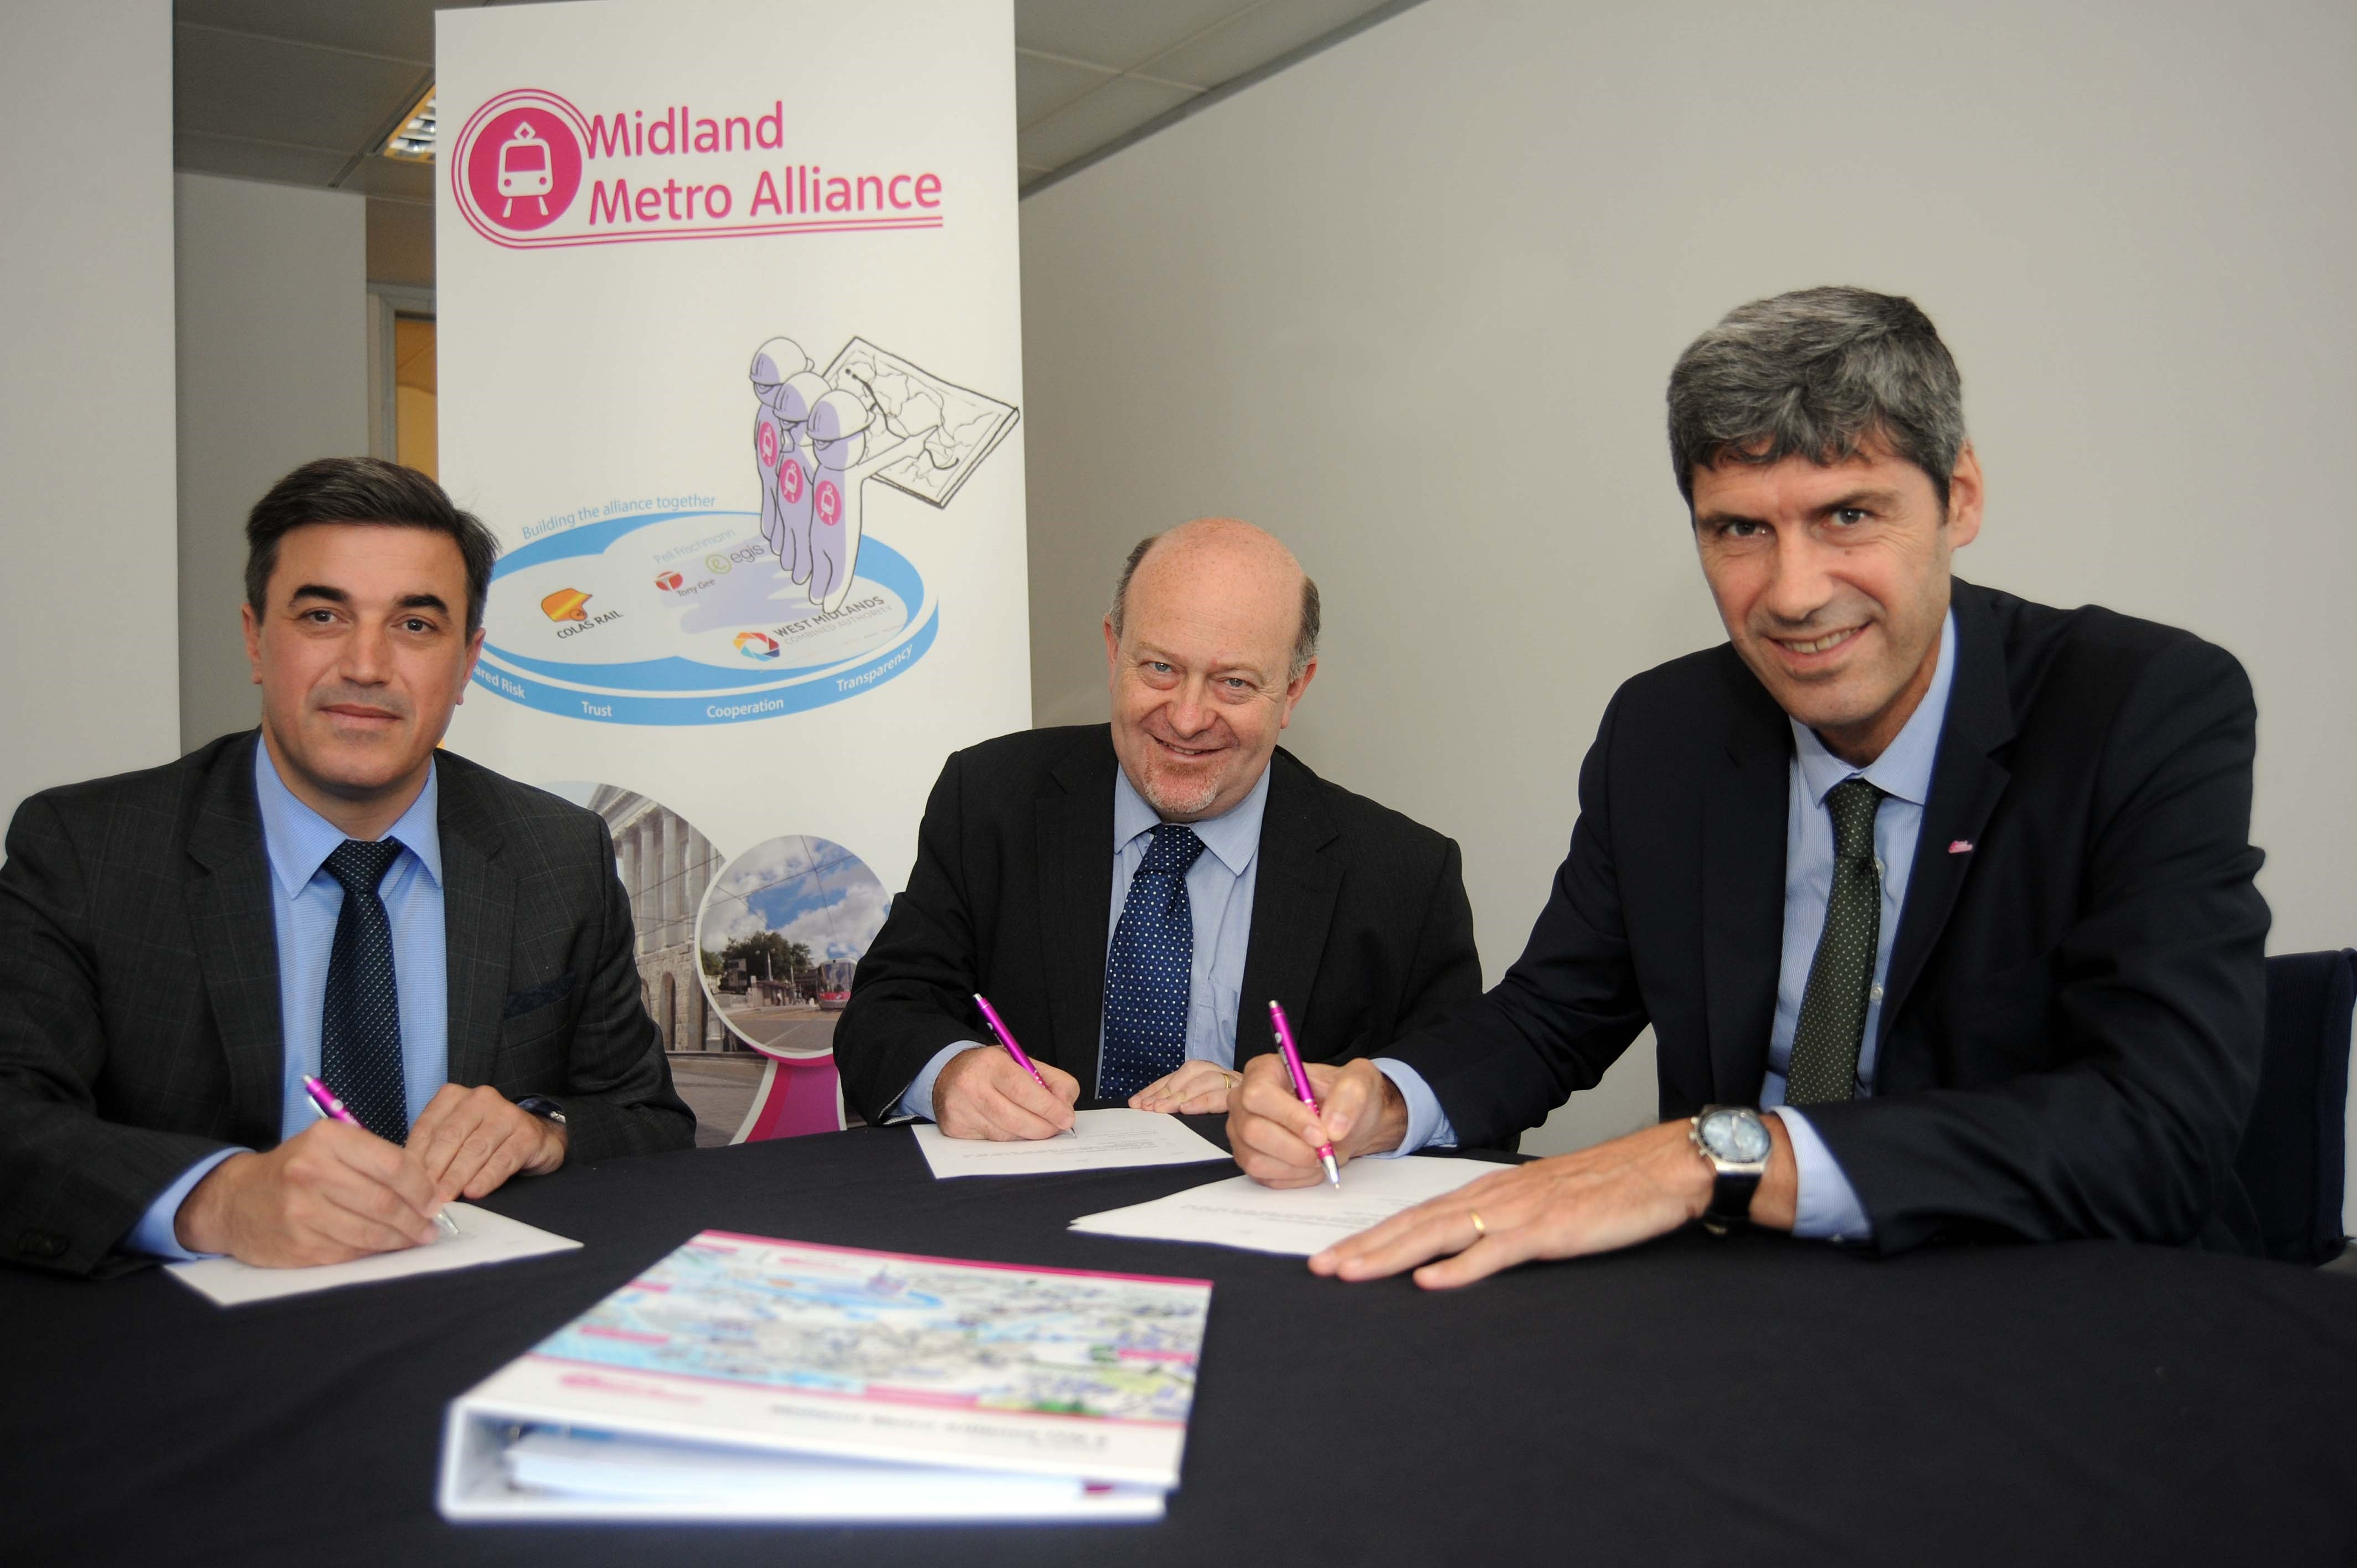 New era in public transport begins as Midland Metro Alliance is formally signed